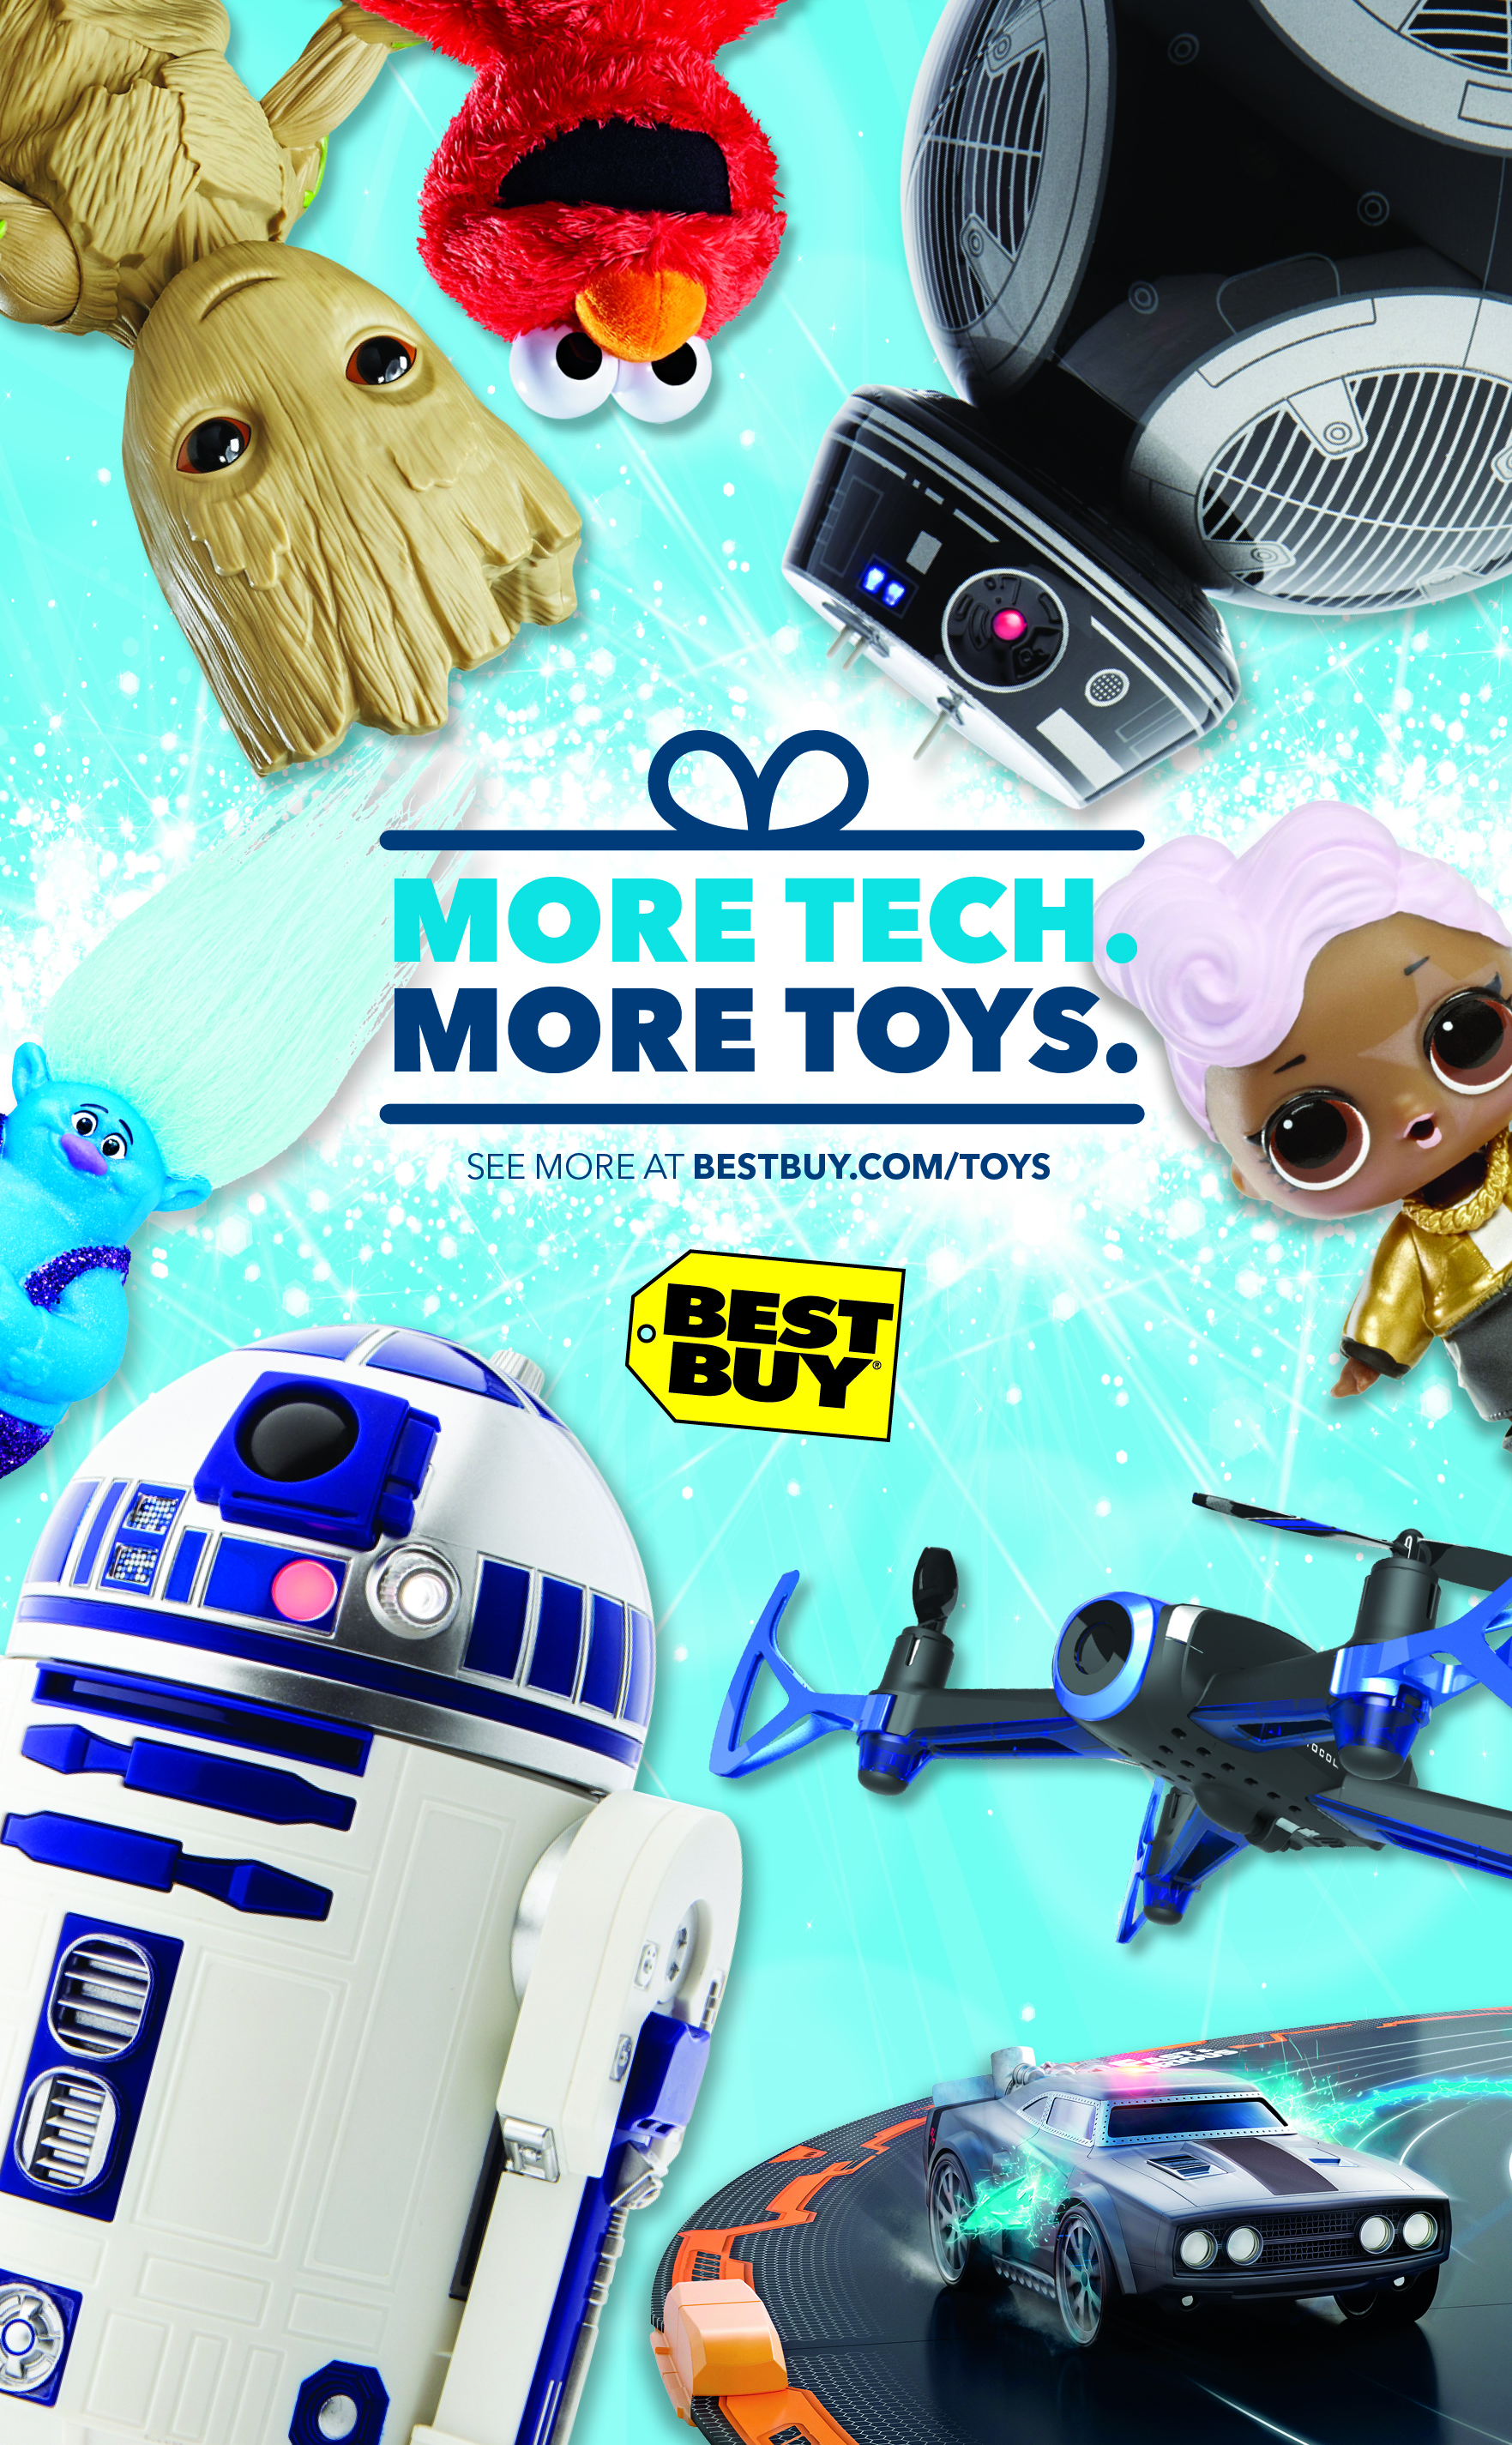 #BestBuy #Holiday #Toys #Blogger #ad